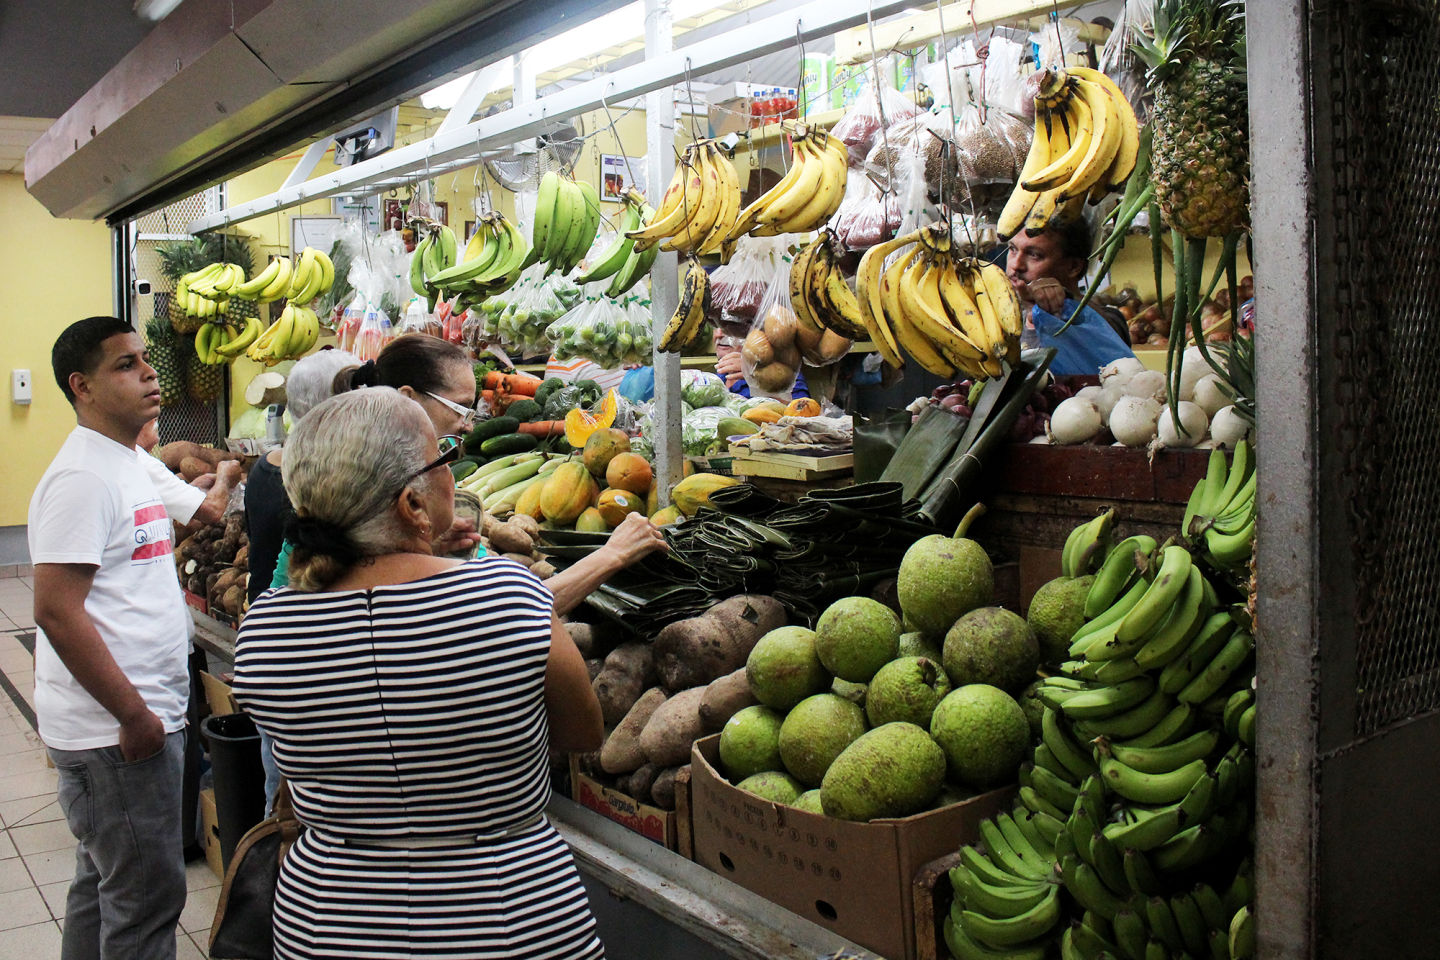 Our Favorite Banana May Be Doomed; Can New Varieties Replace It?